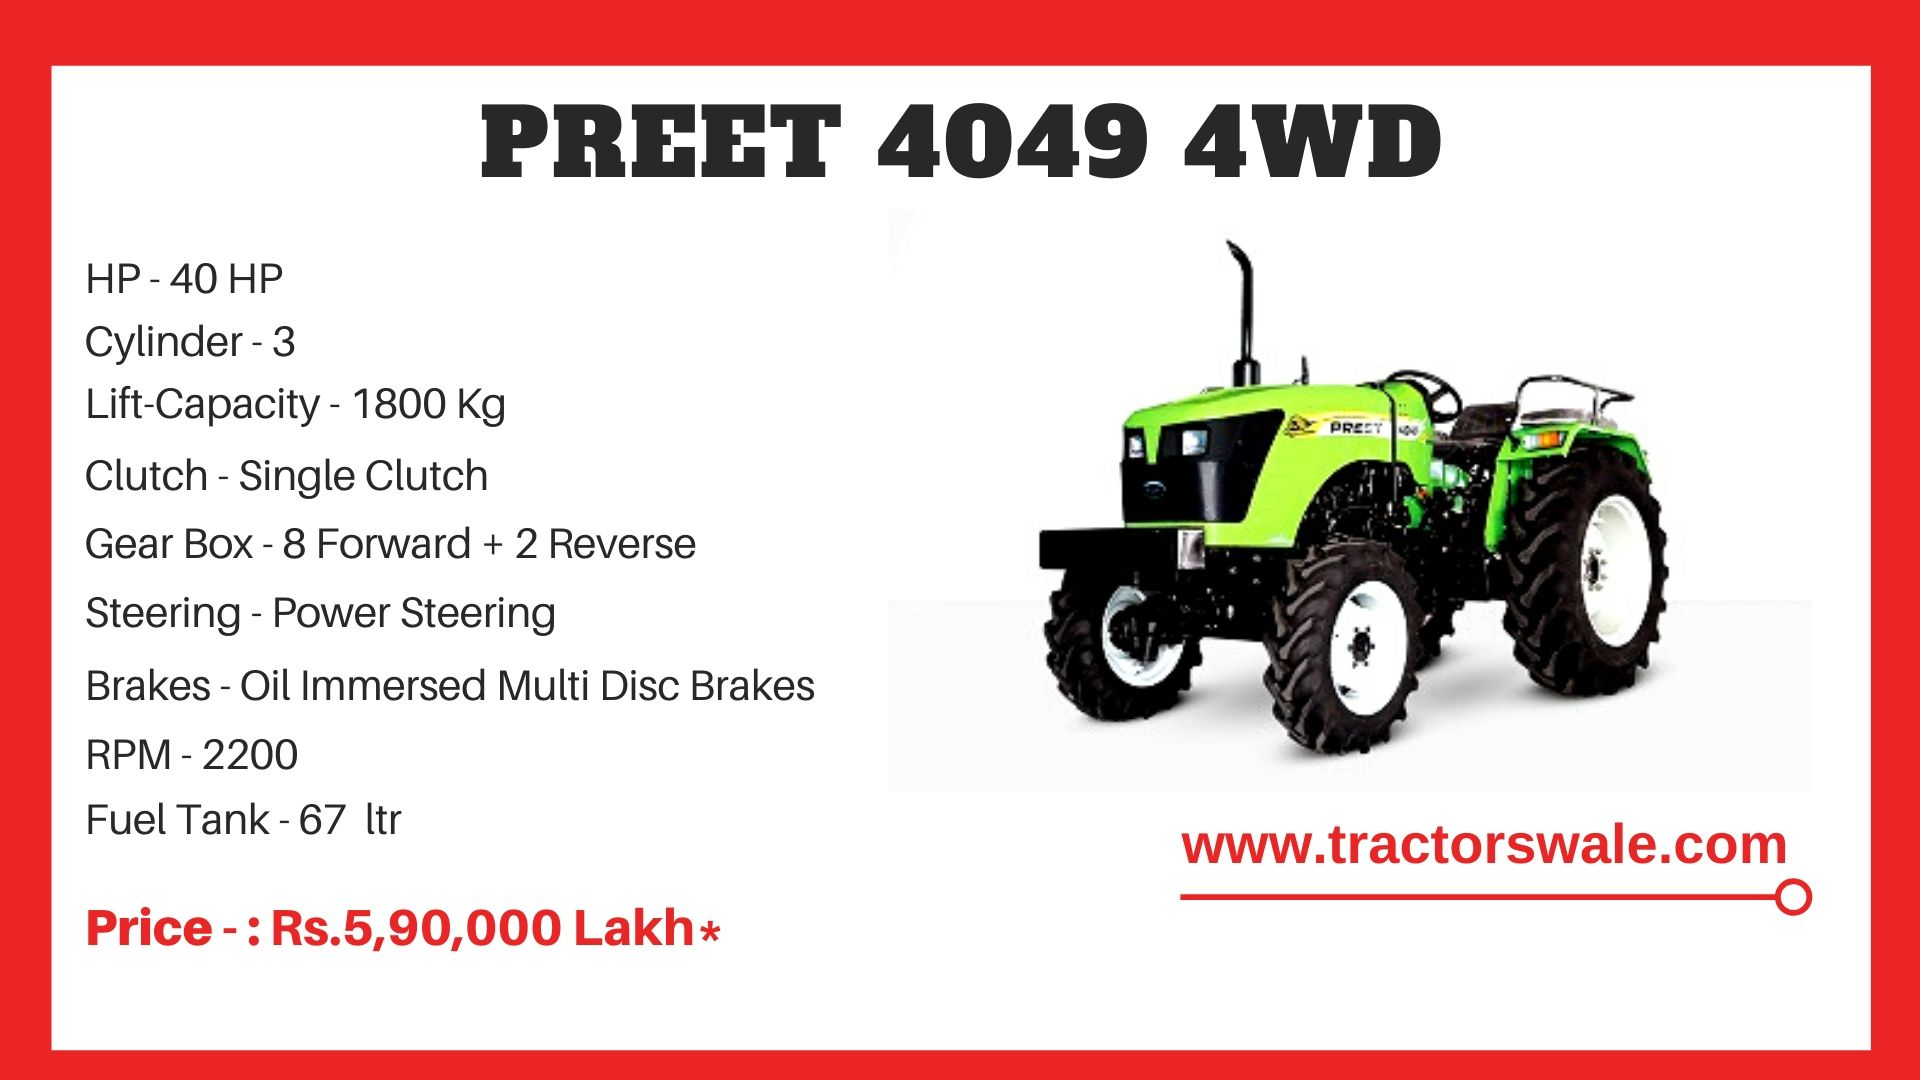 Preet 4049 4WD tractor price